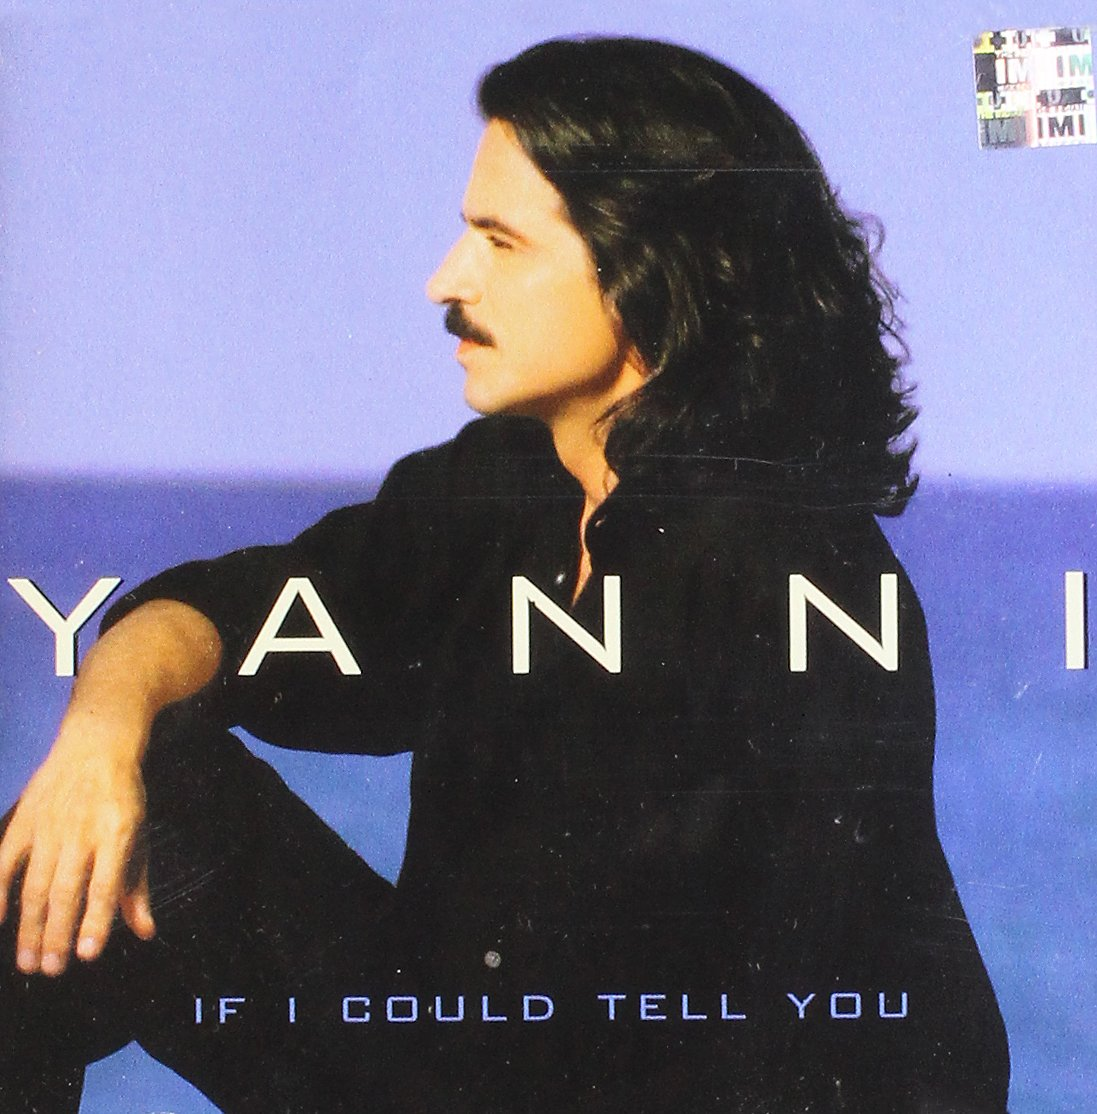 Yanni - If I Could Tell You - CD /plast/